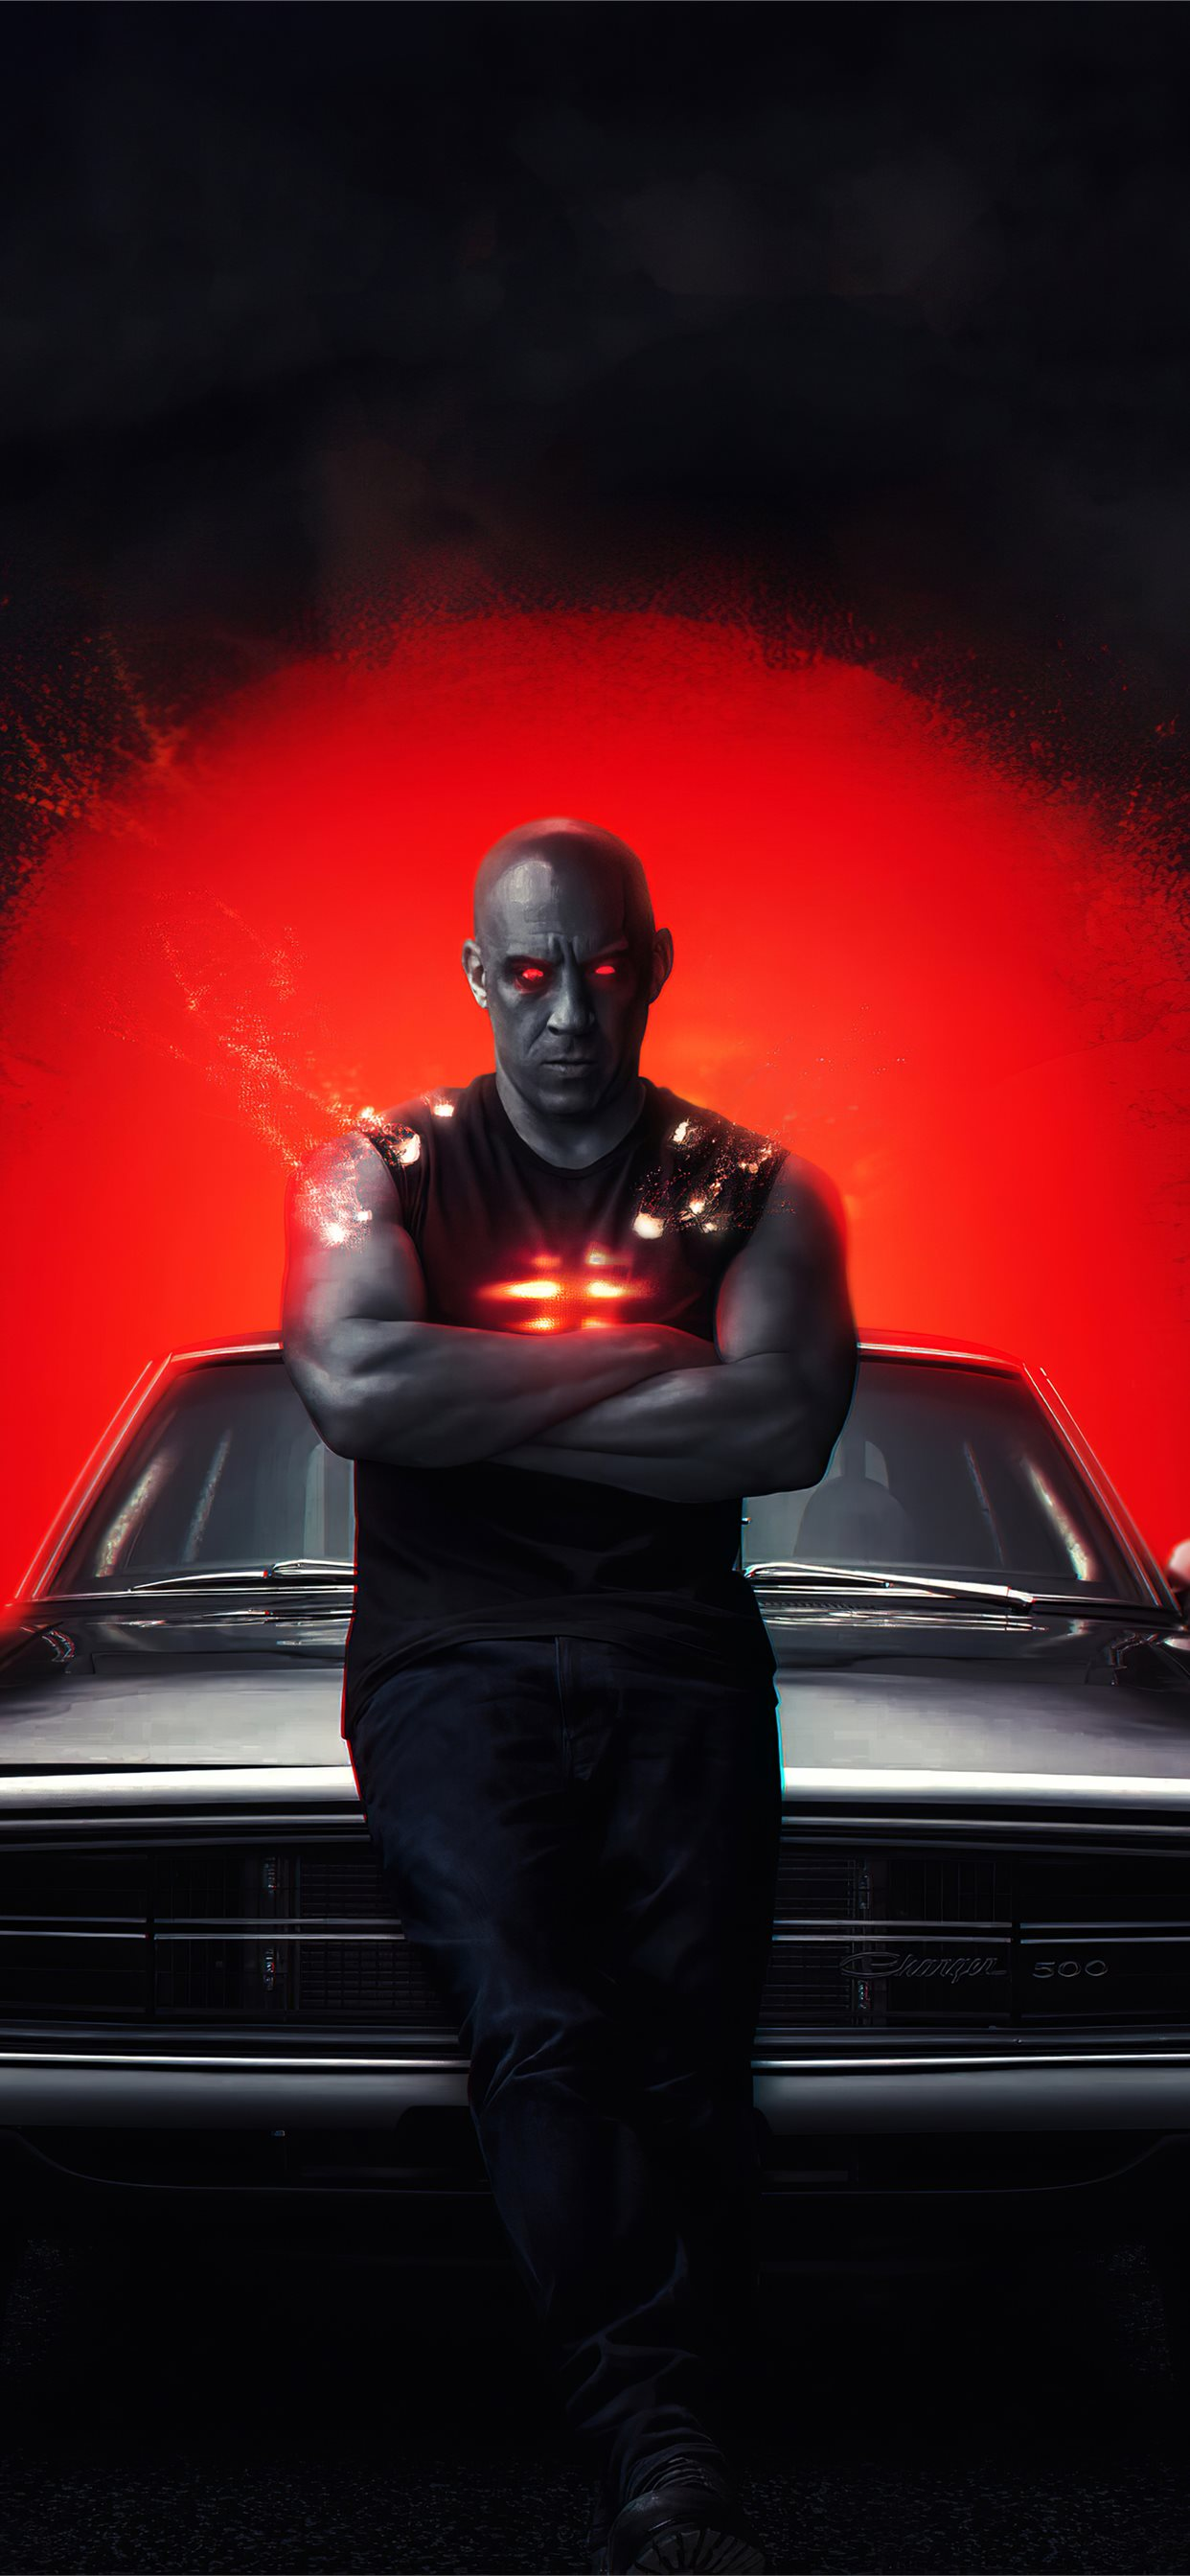 bloodshot x fast and furious 9 movie 4k 2020 iPhone Wallpapers 1242x2688